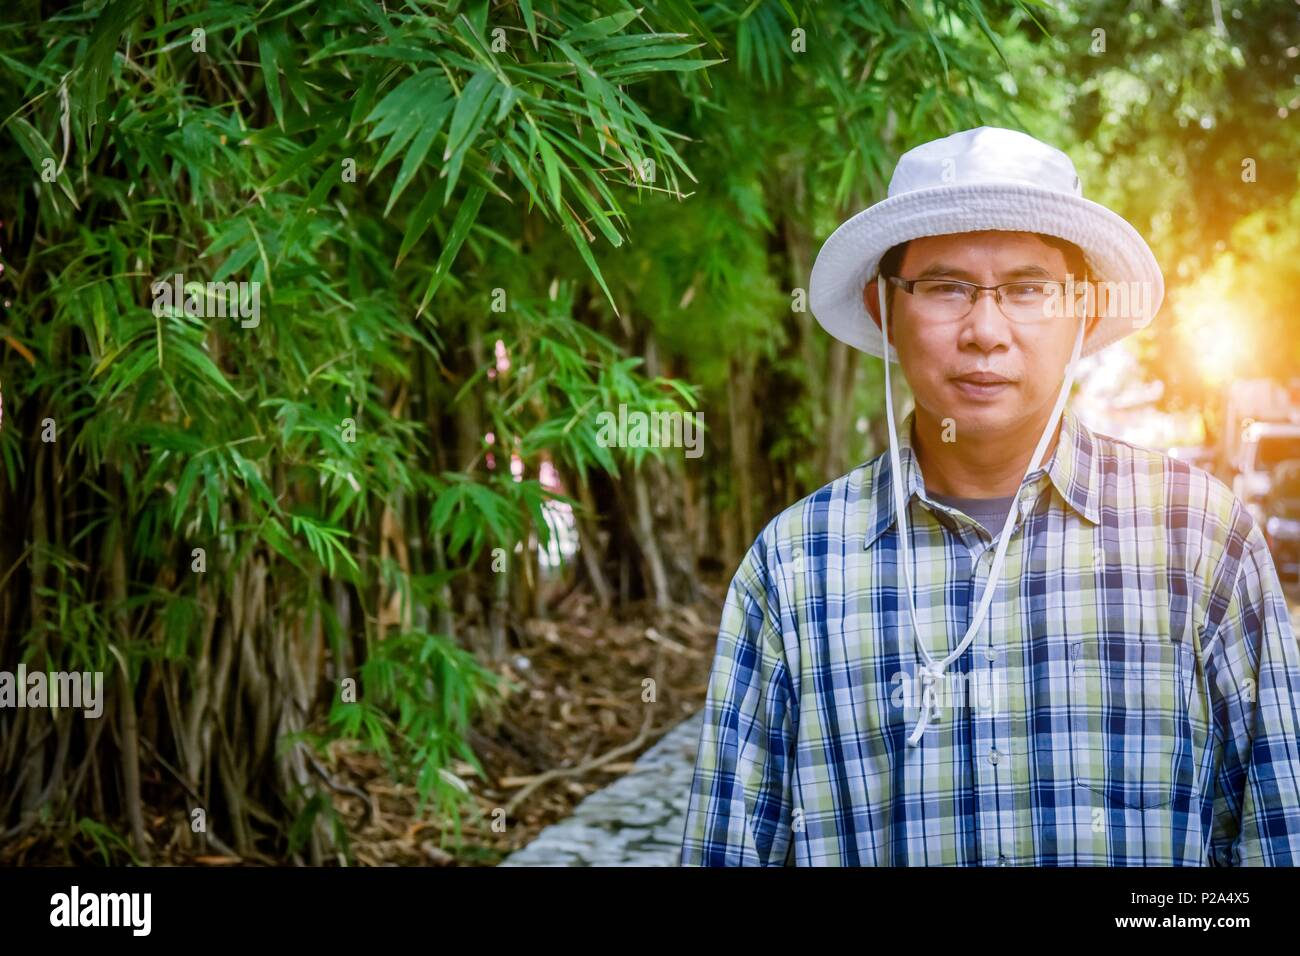 40-55 year old male farmer succeeded. Bamboo growing career. A career that can be hugely harsh income. By using the Smart Farm business model. - Stock Image